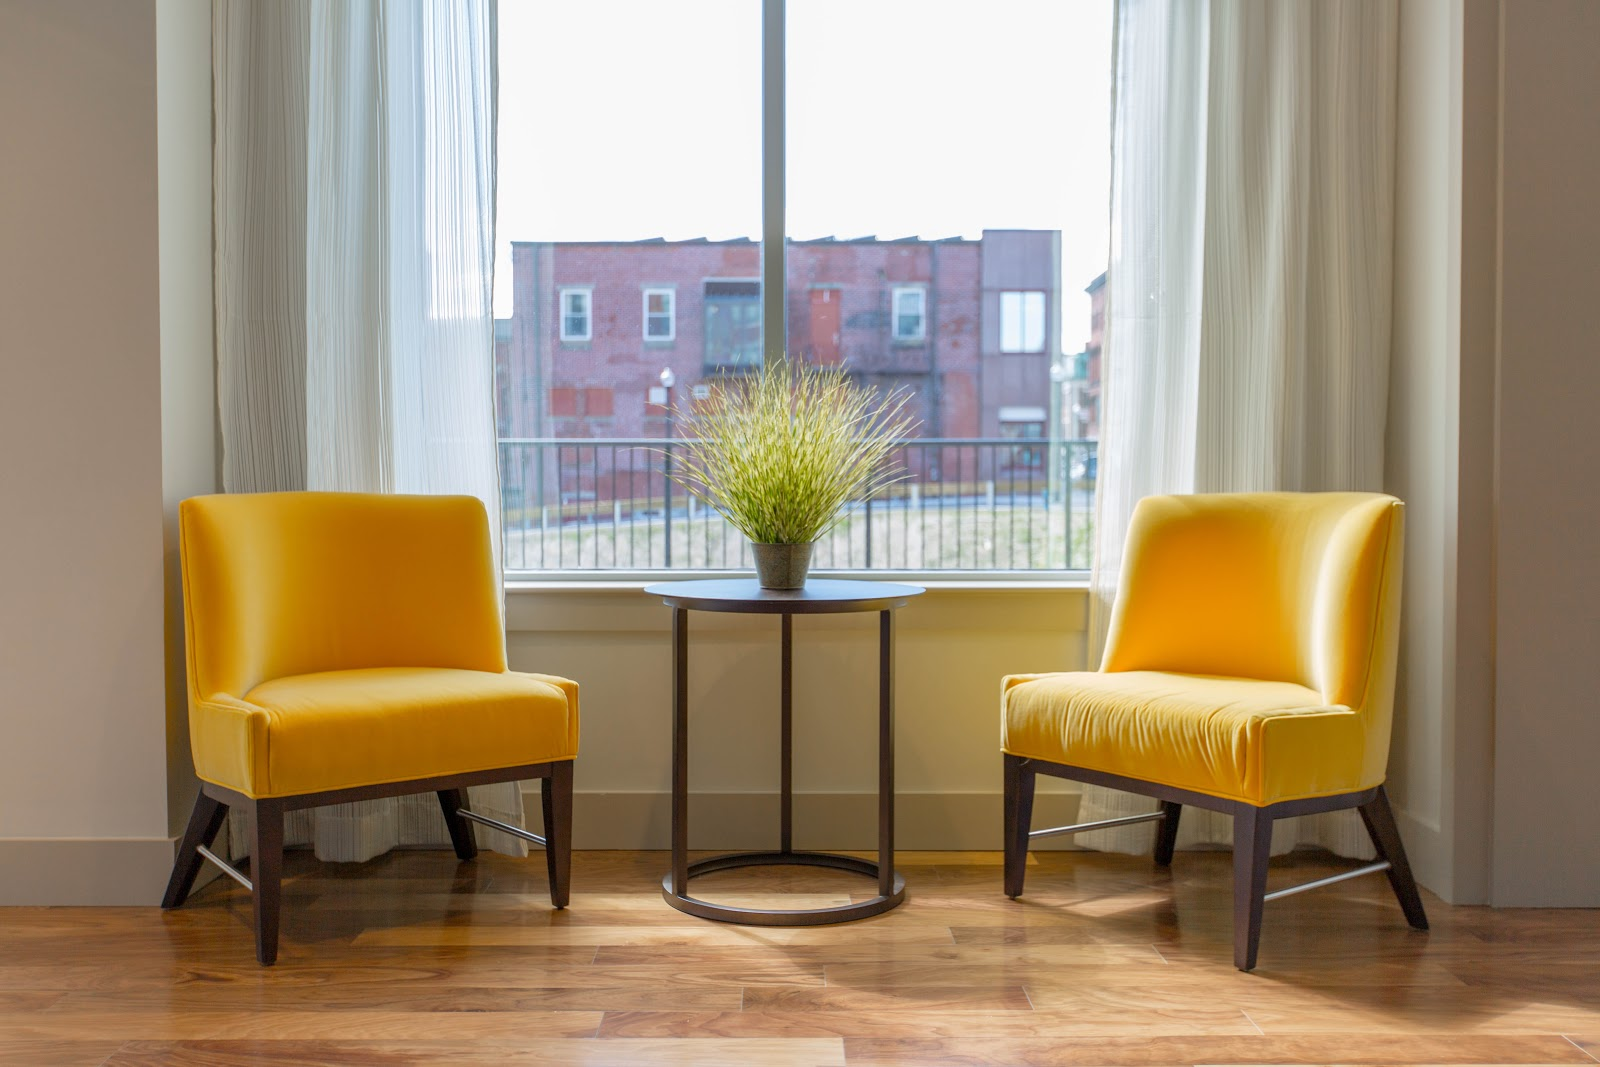 table-wood-chair-floor-home-property-living-room-furniture-room-yellow-apartment-interior-design-design-hardwood-waiting-room-real-estate-dining-room-flooring-window-covering-1399747.jpg